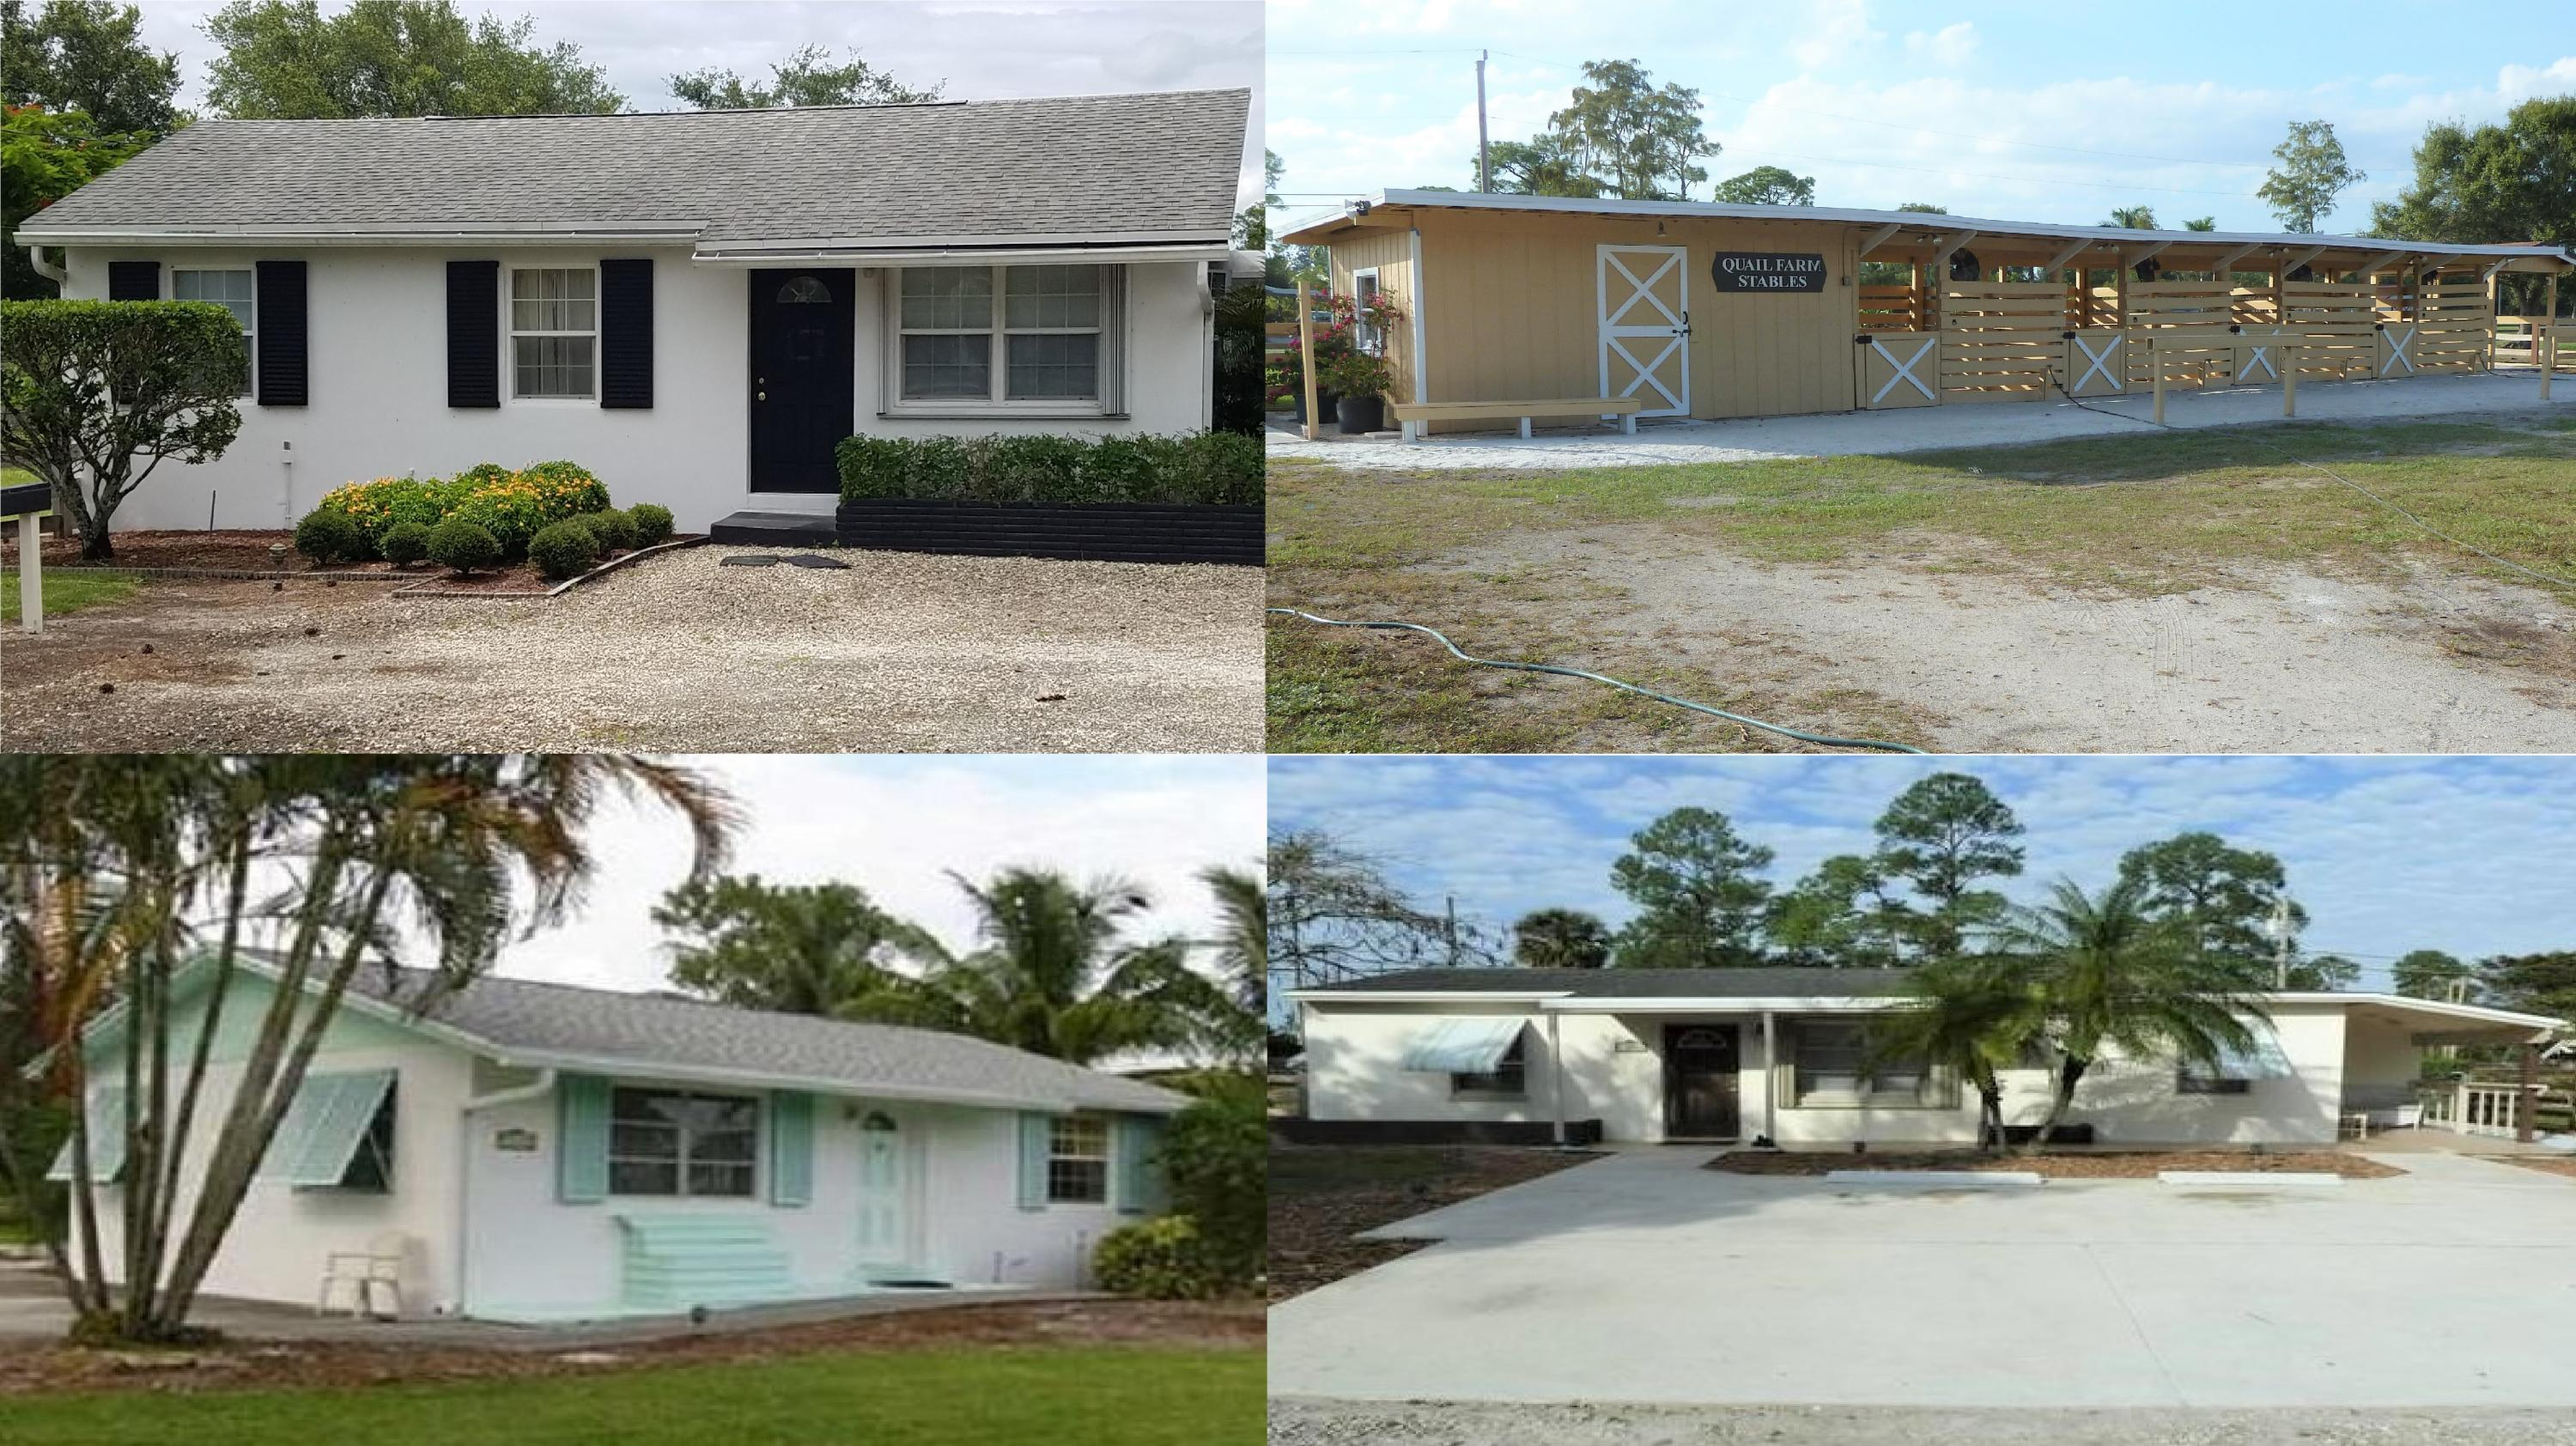 Details for 13260 Collecting Canal Rd, Loxahatchee Groves, FL 33470